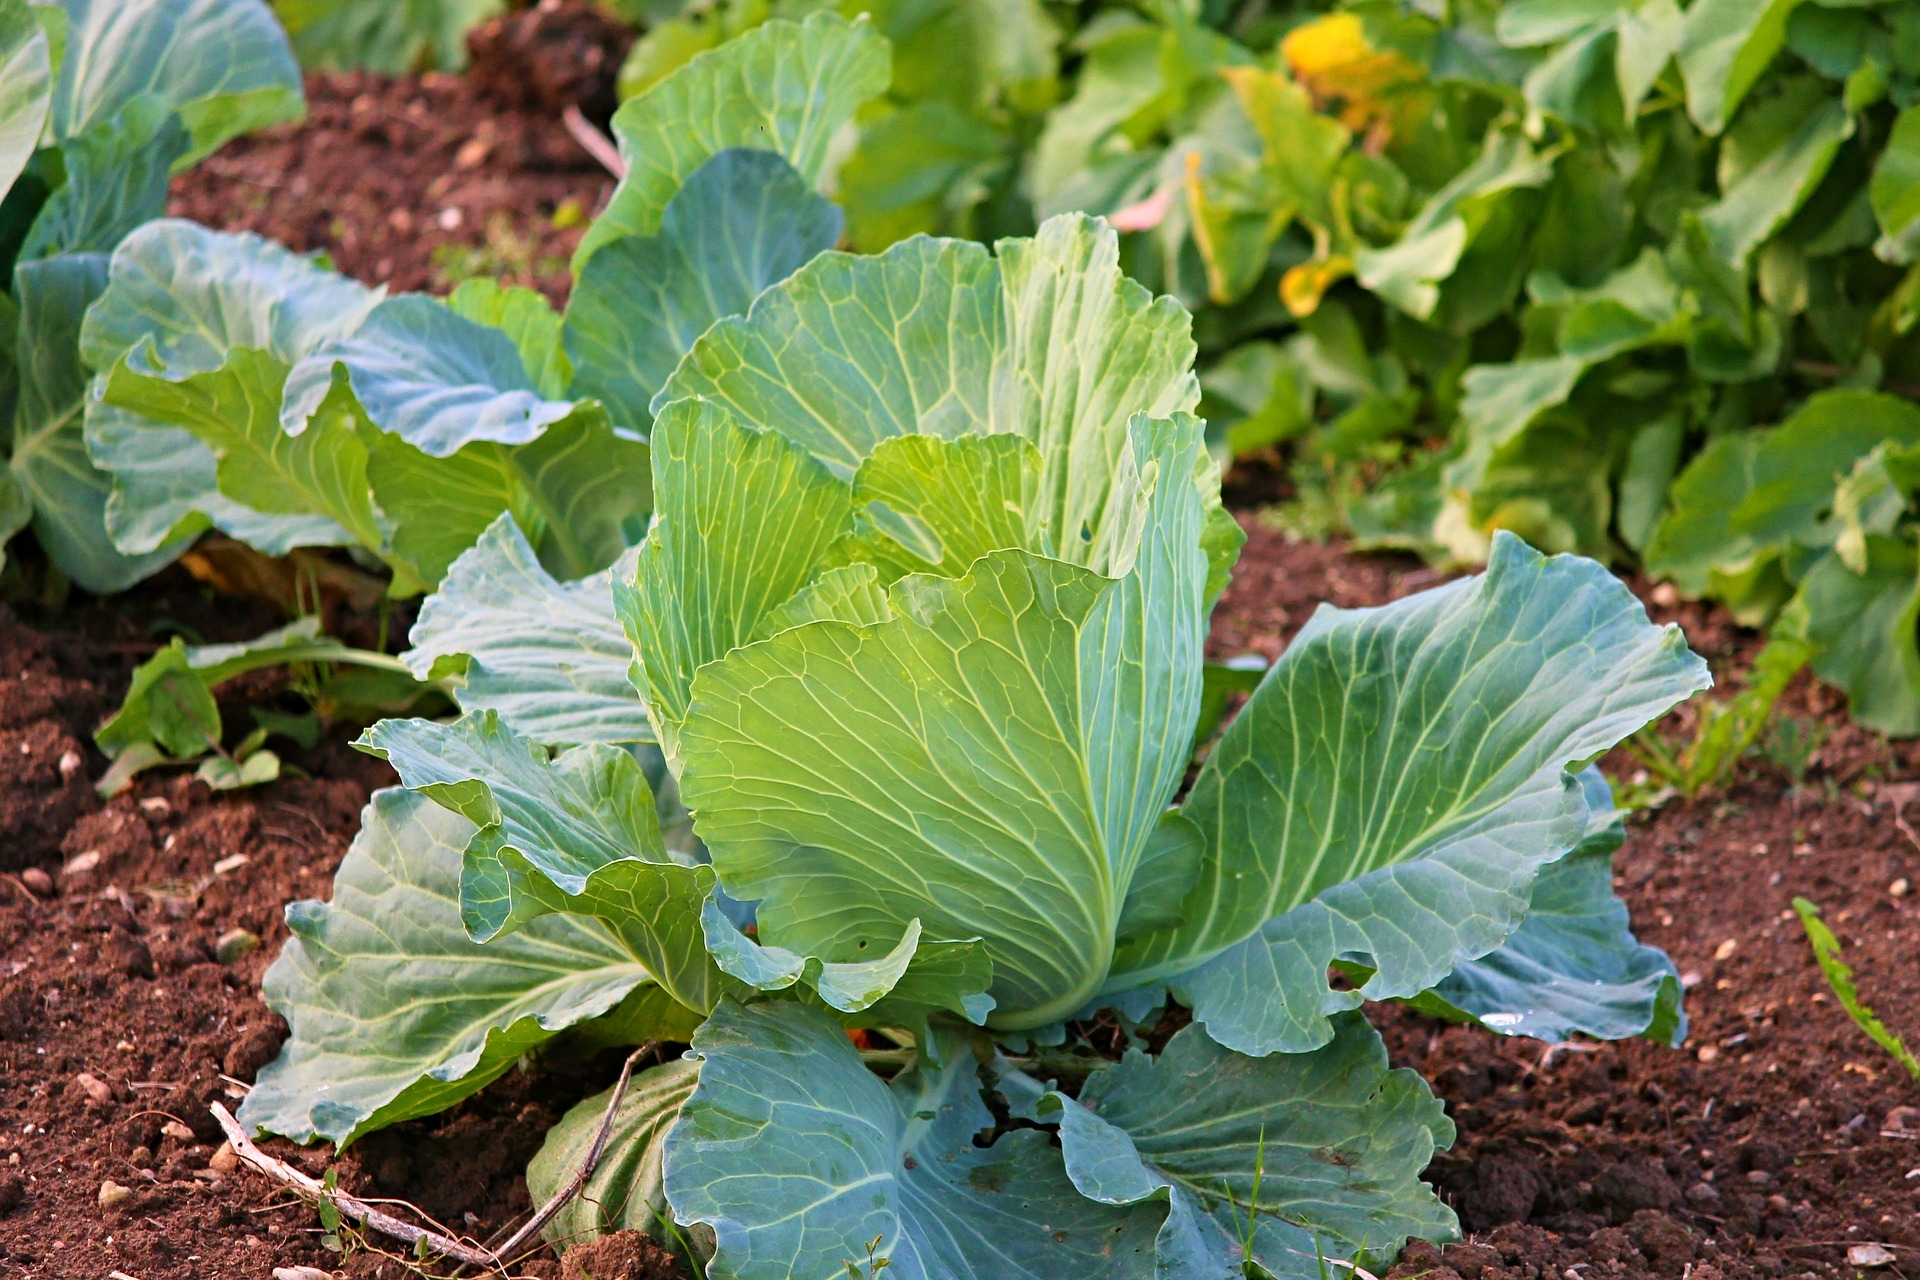 Growing-Vegetables-Garden.jpg